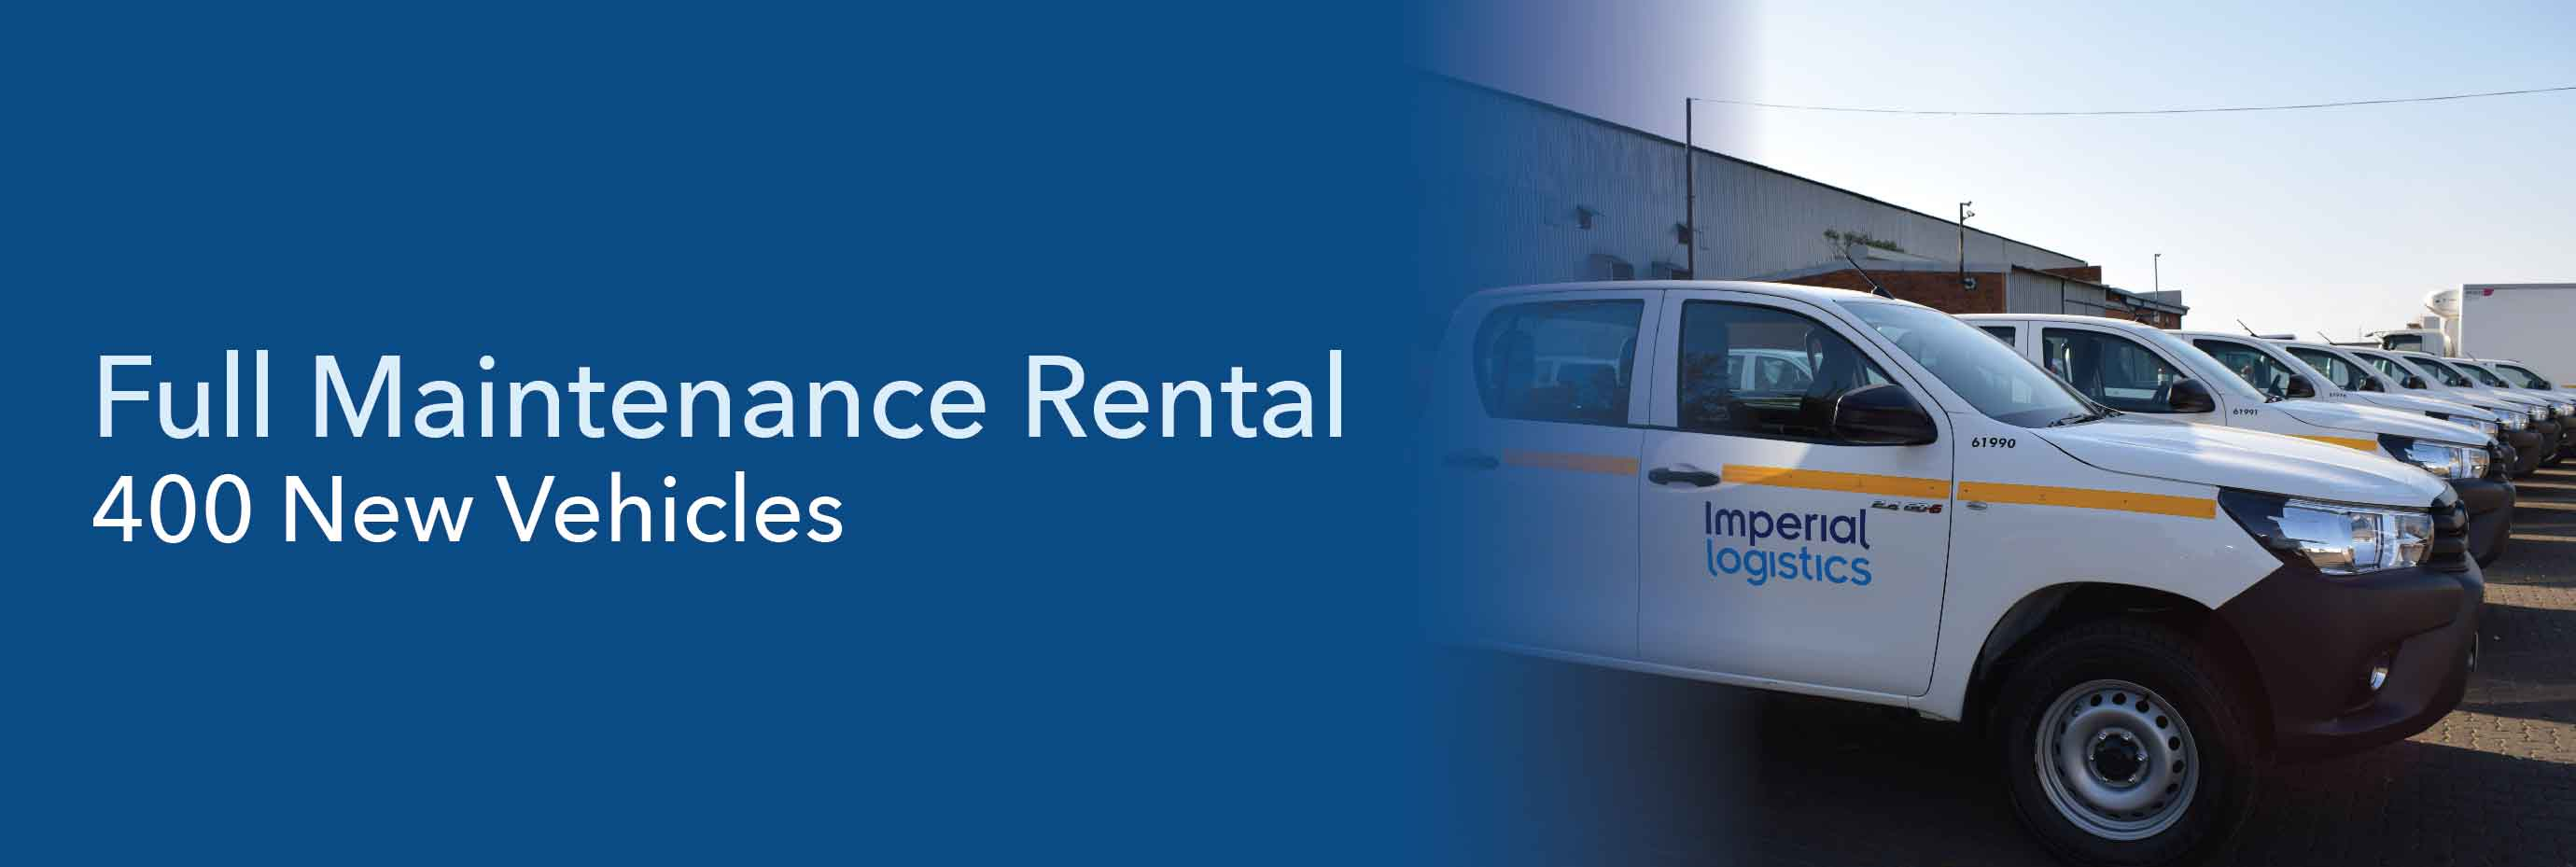 Imperial-Truck-Hire_Full-Maintenance-Rental_11-August-2019-01-1